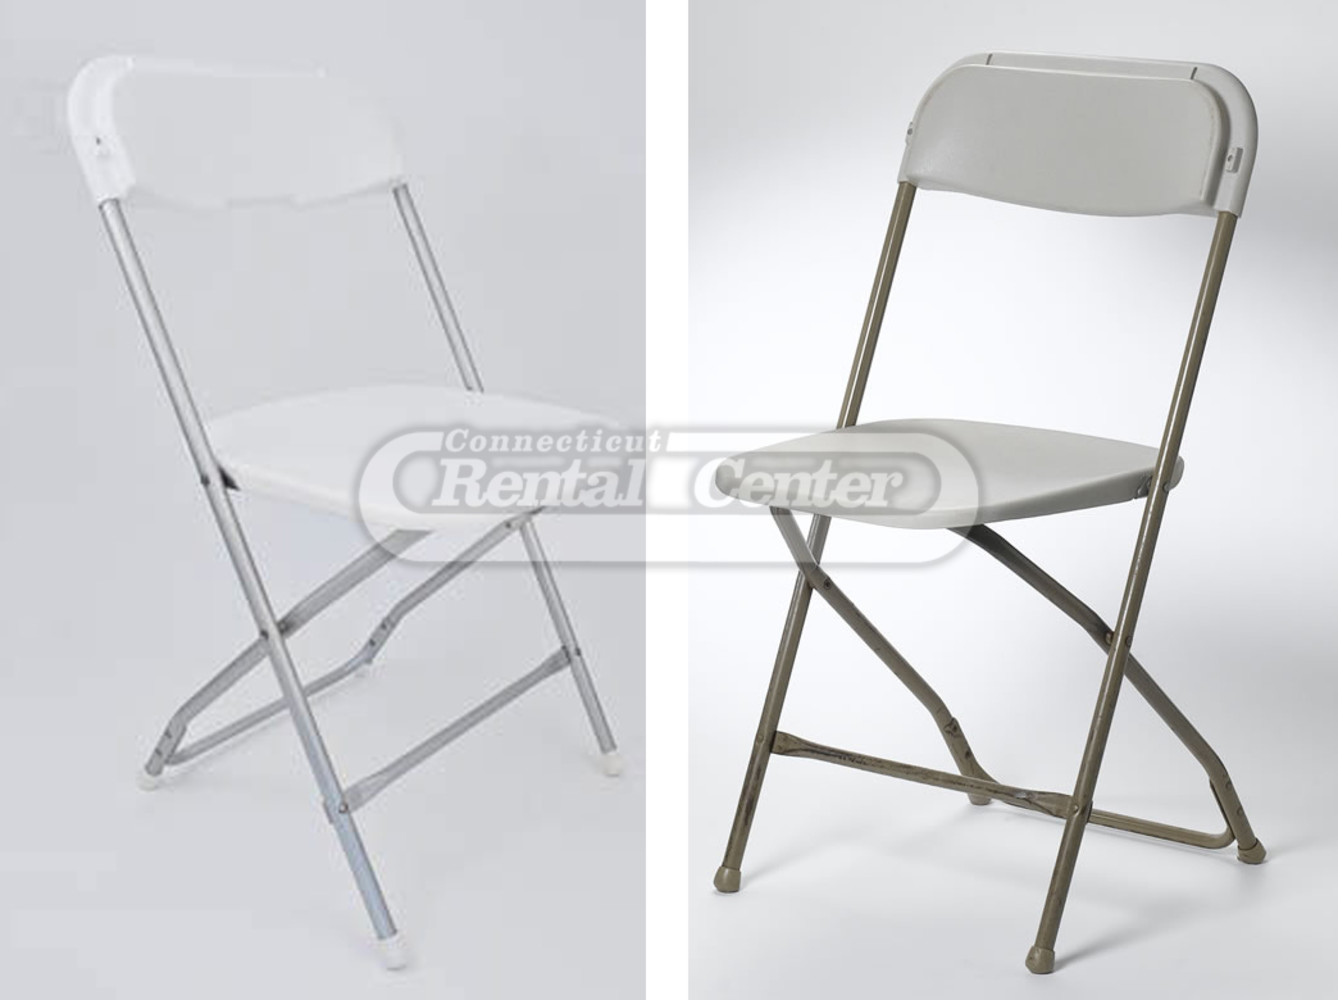 Folding Chairs For Rent Rent Fiberglass Folding Chair From Ct Rental Center